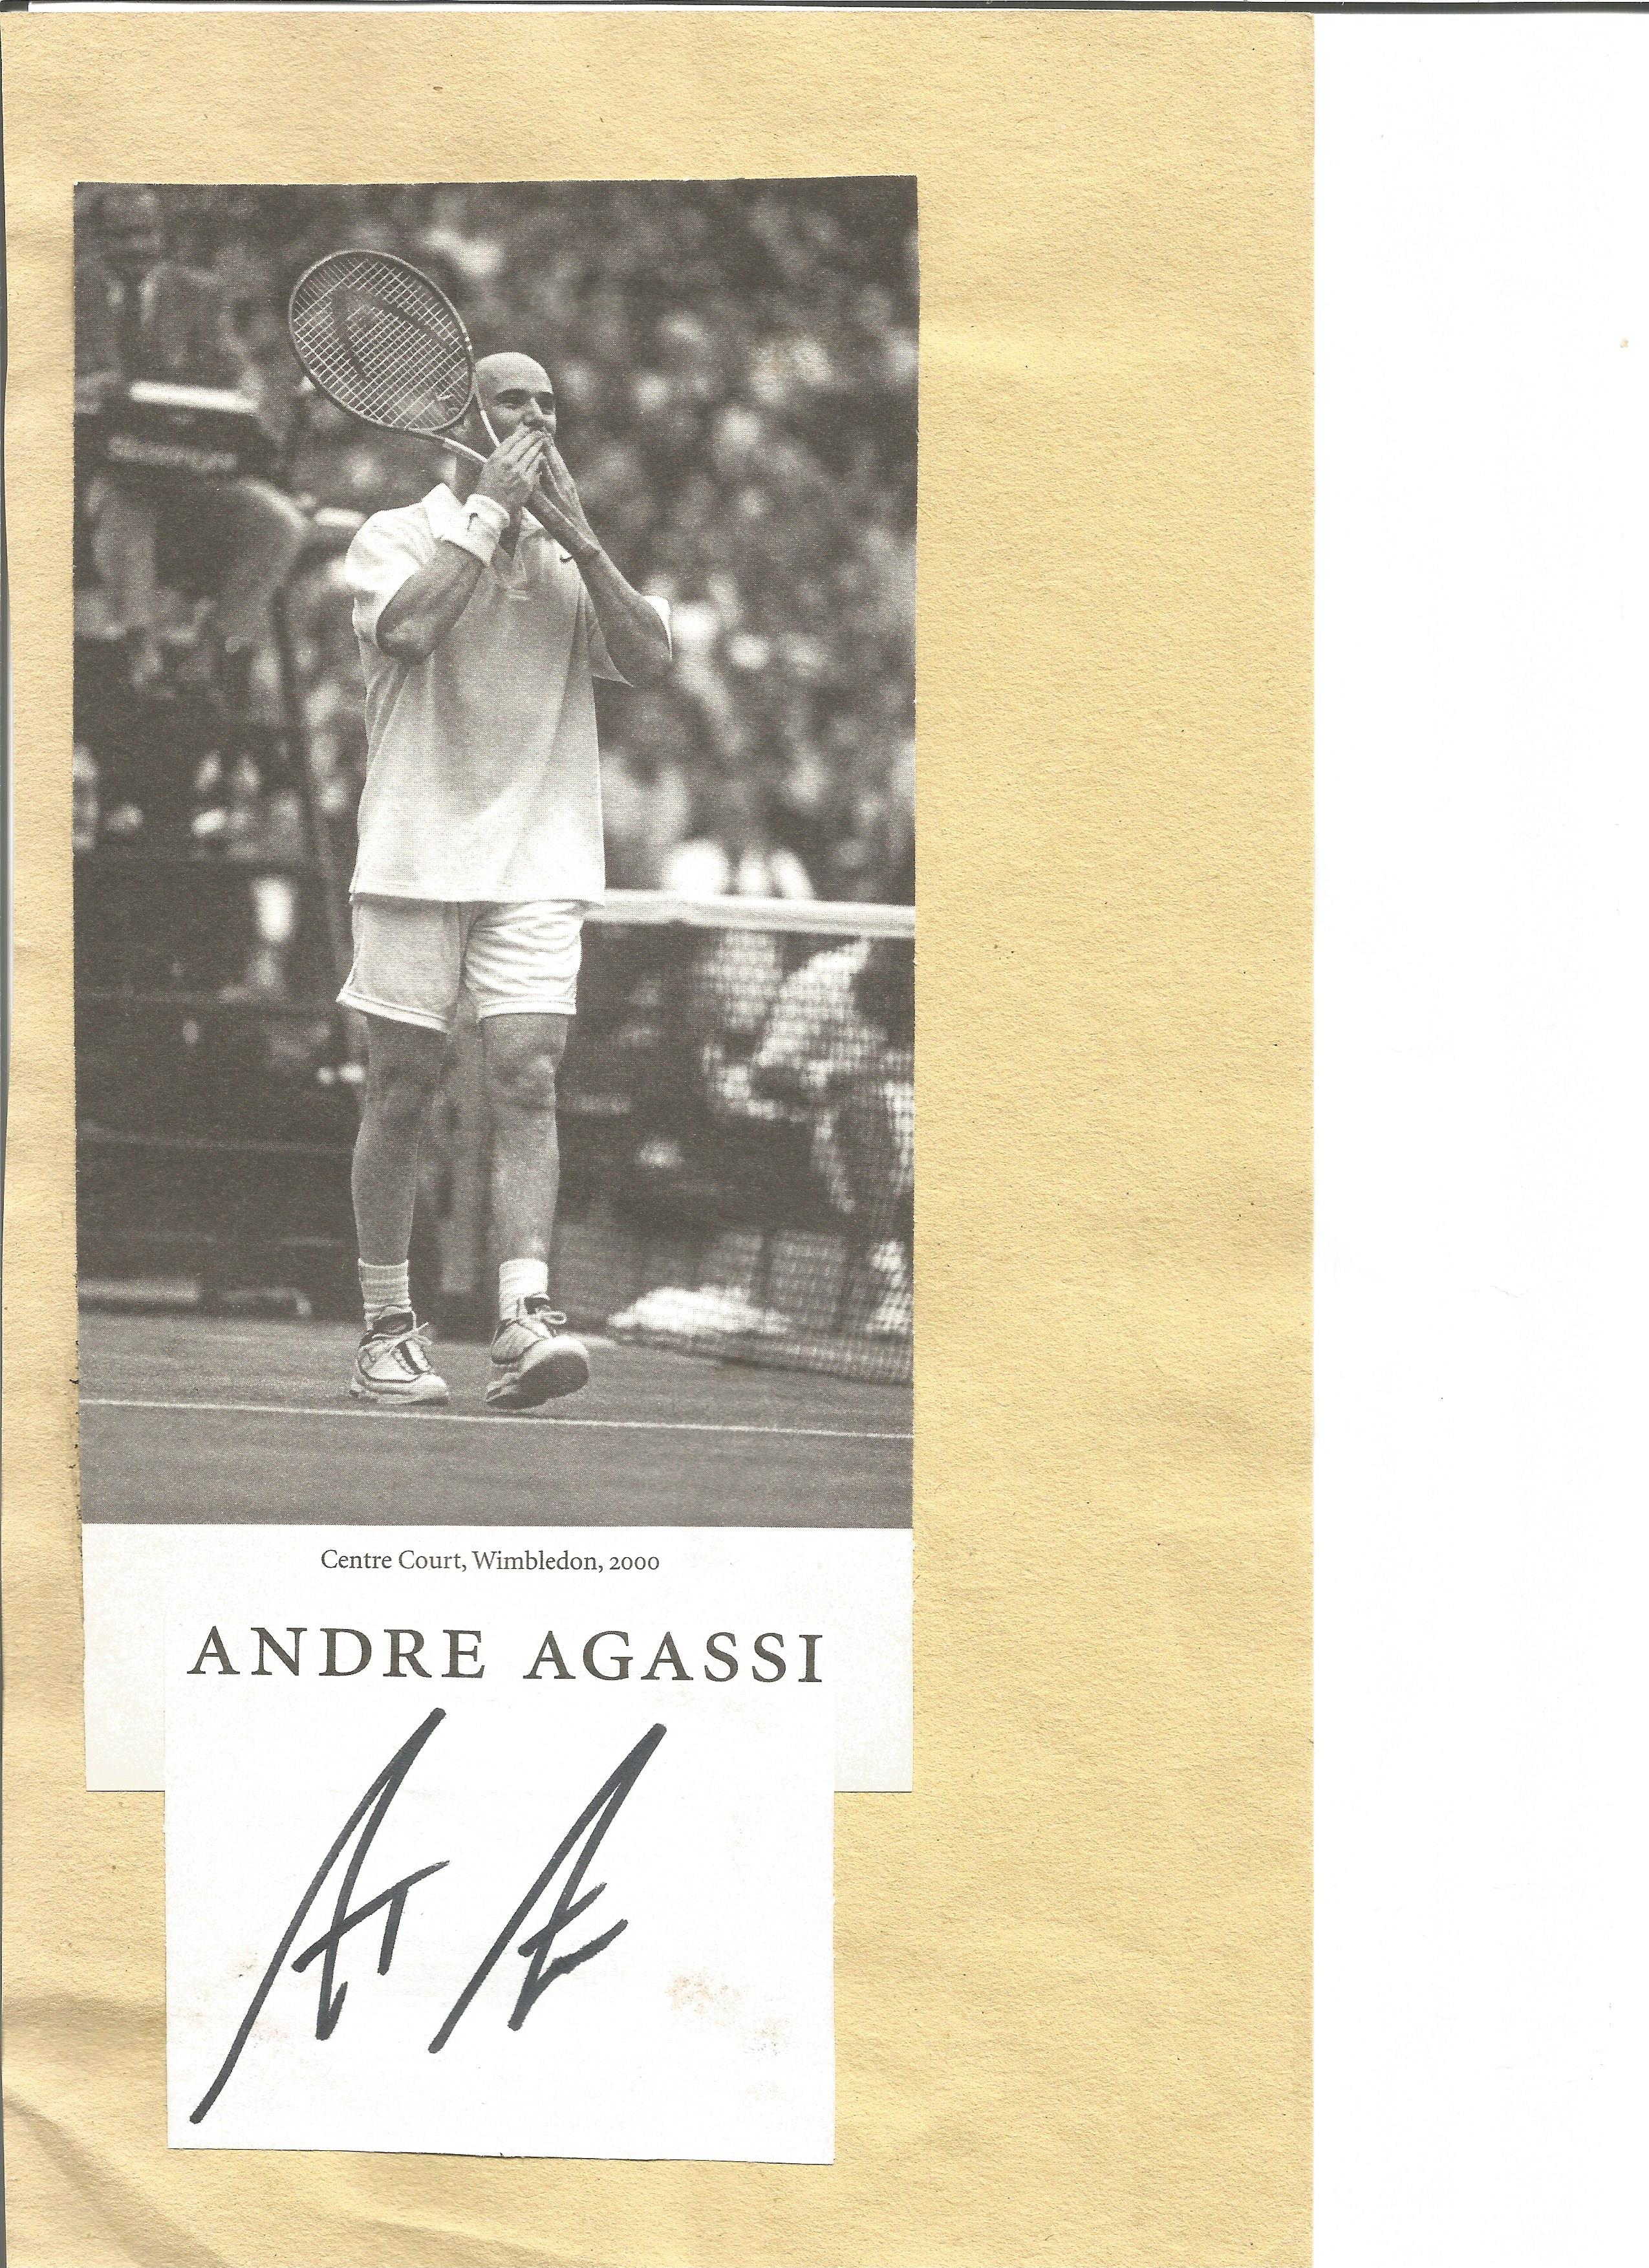 Lot 237 - Tennis Andre Agassi signature piece with magazine photo fixed to card. Andre Kirk Agassi born